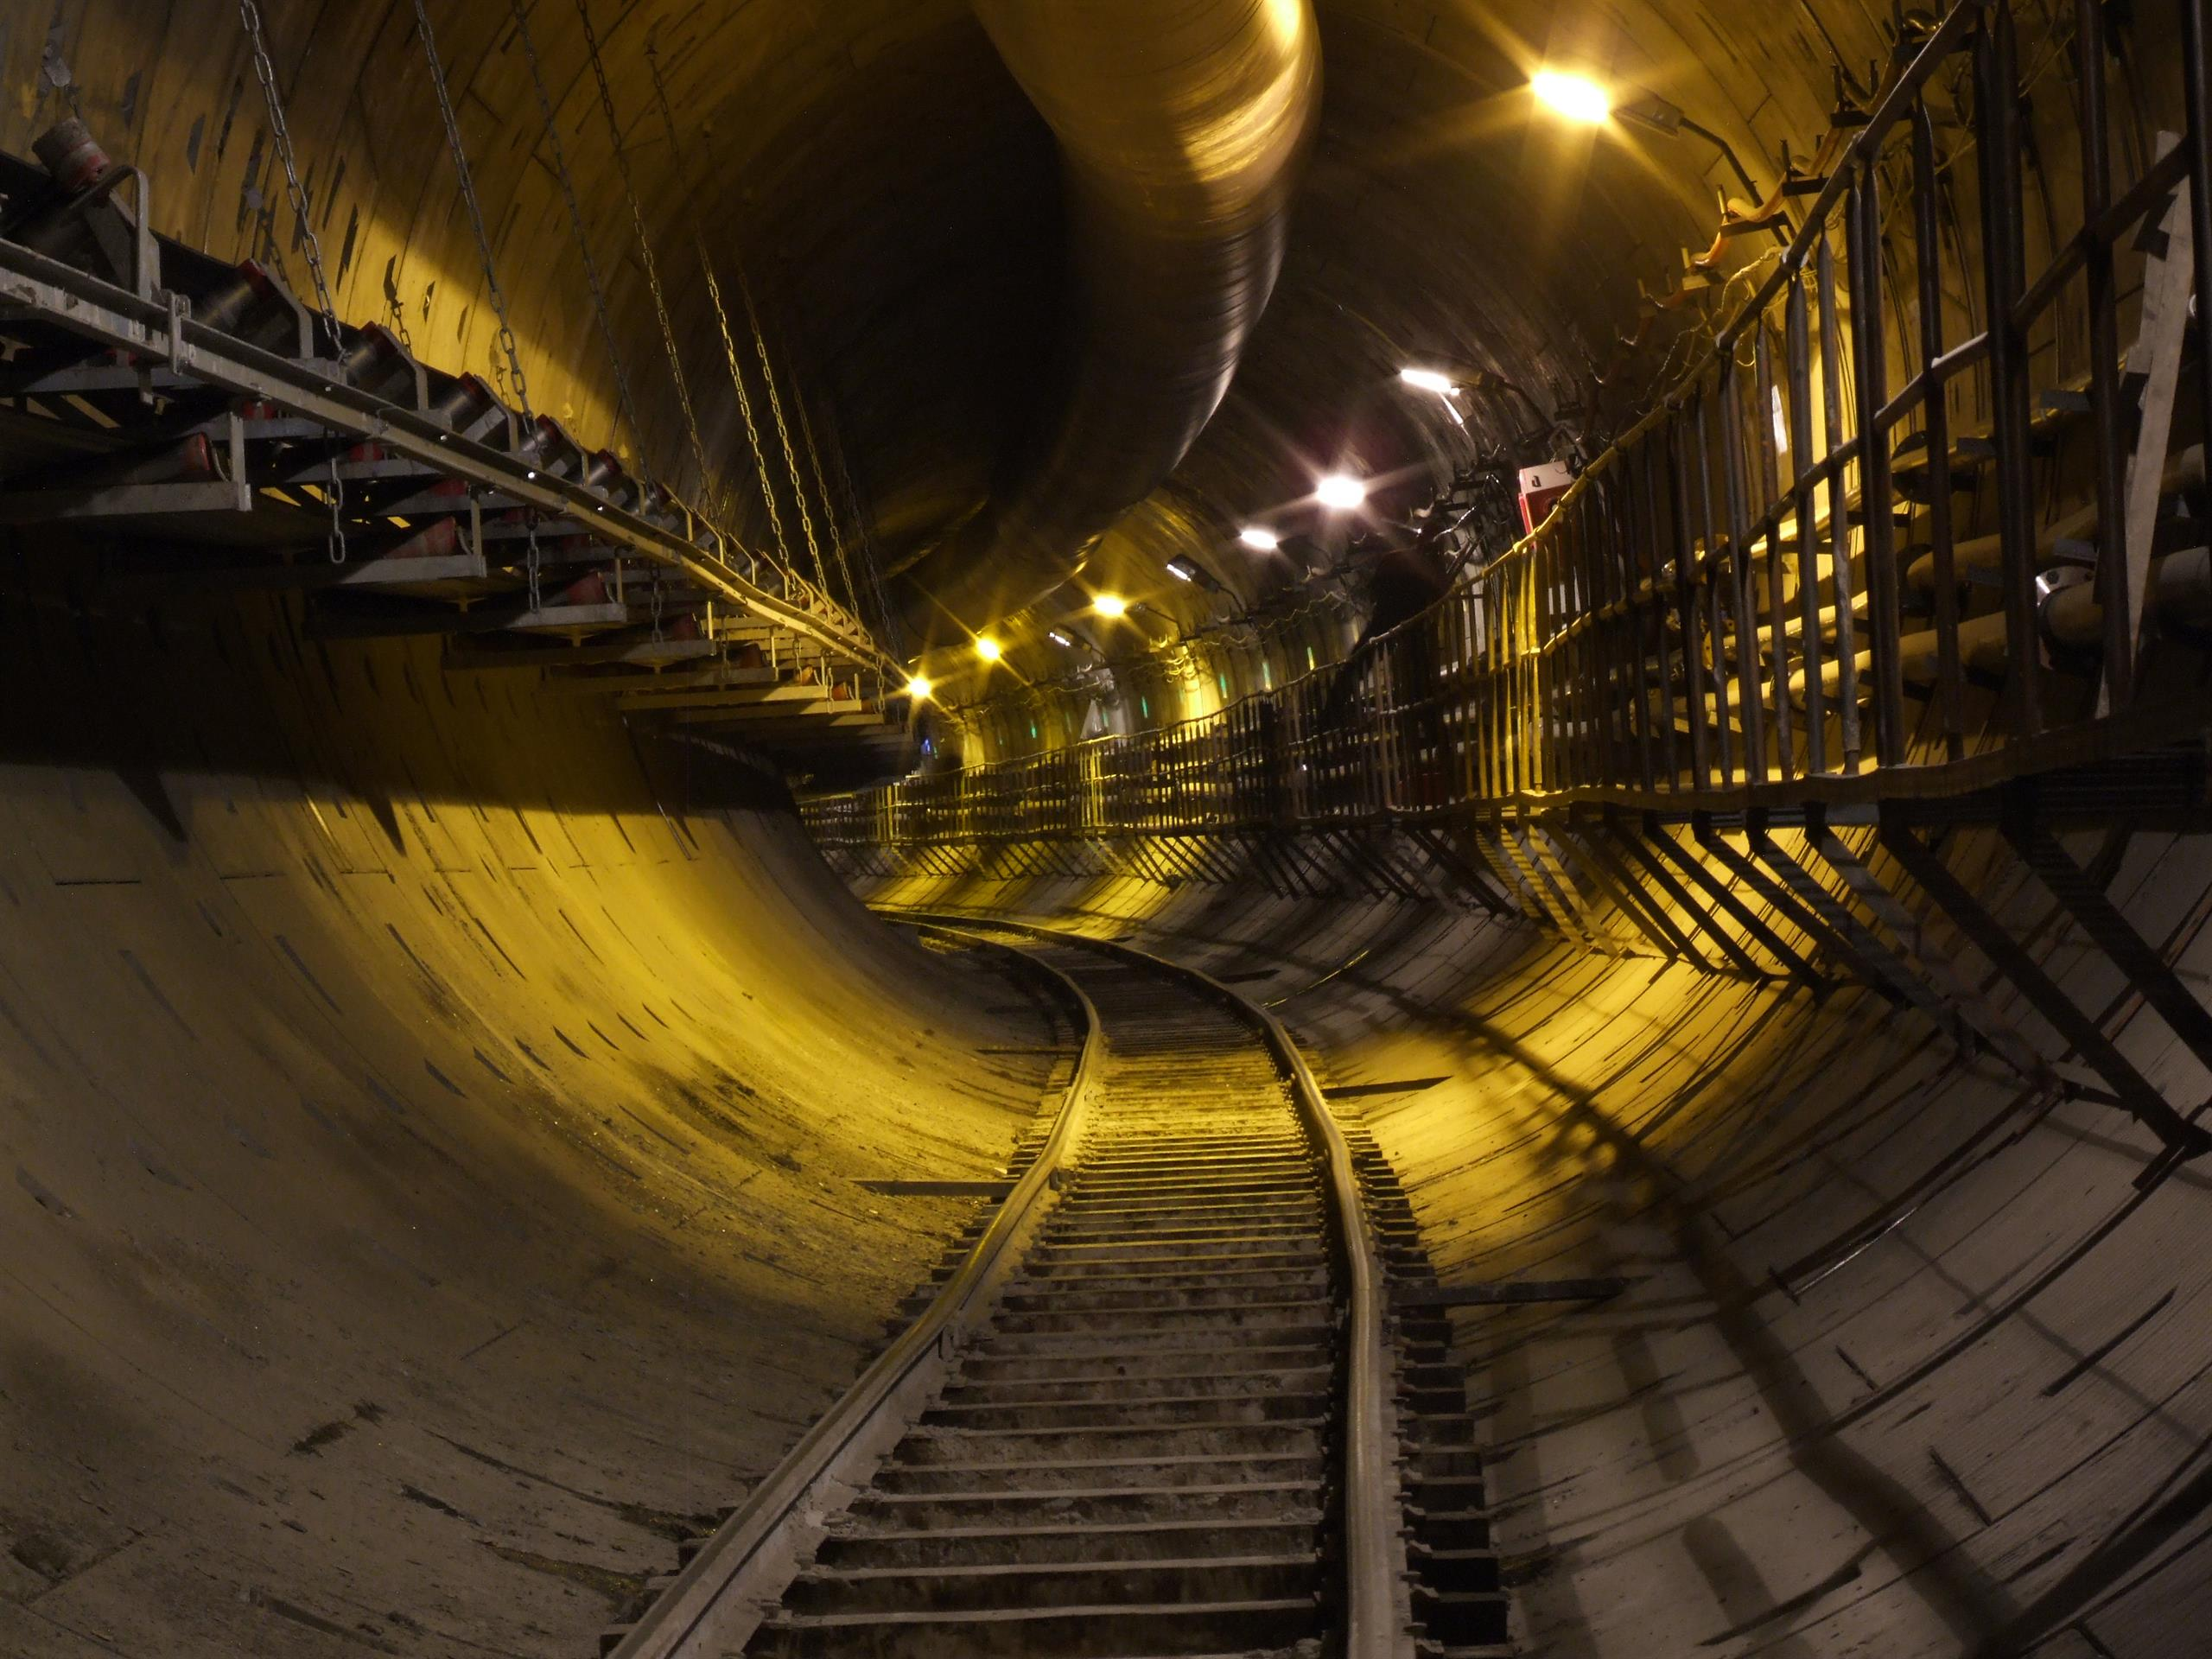 Rail tunnel with track installed